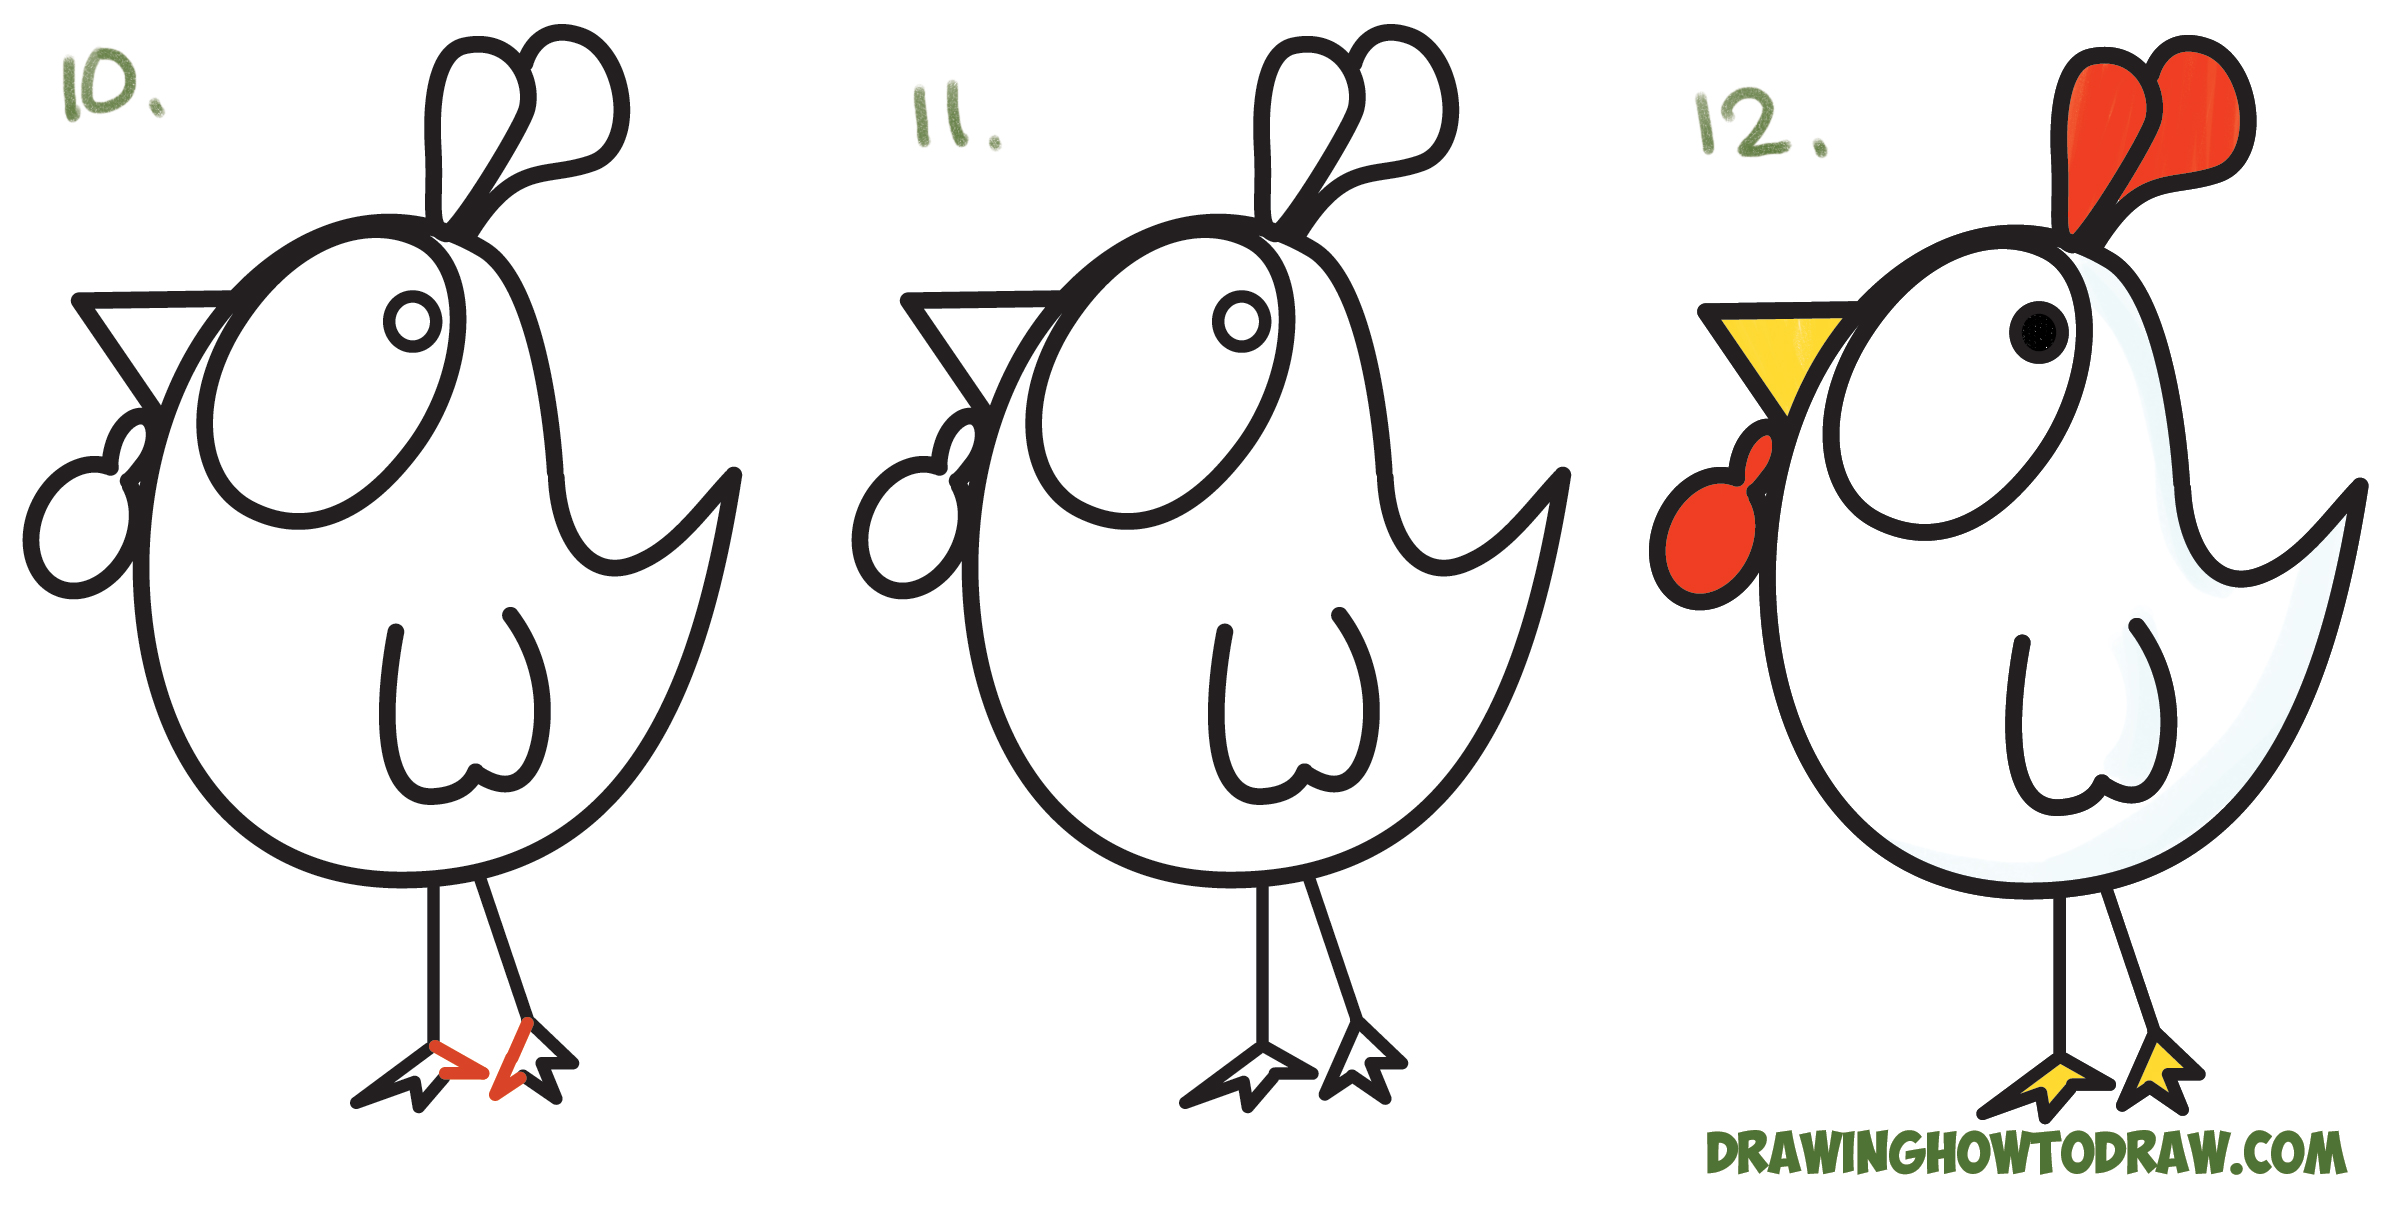 How to draw cartoons for beginners step by for How to make cartoon drawings step by step